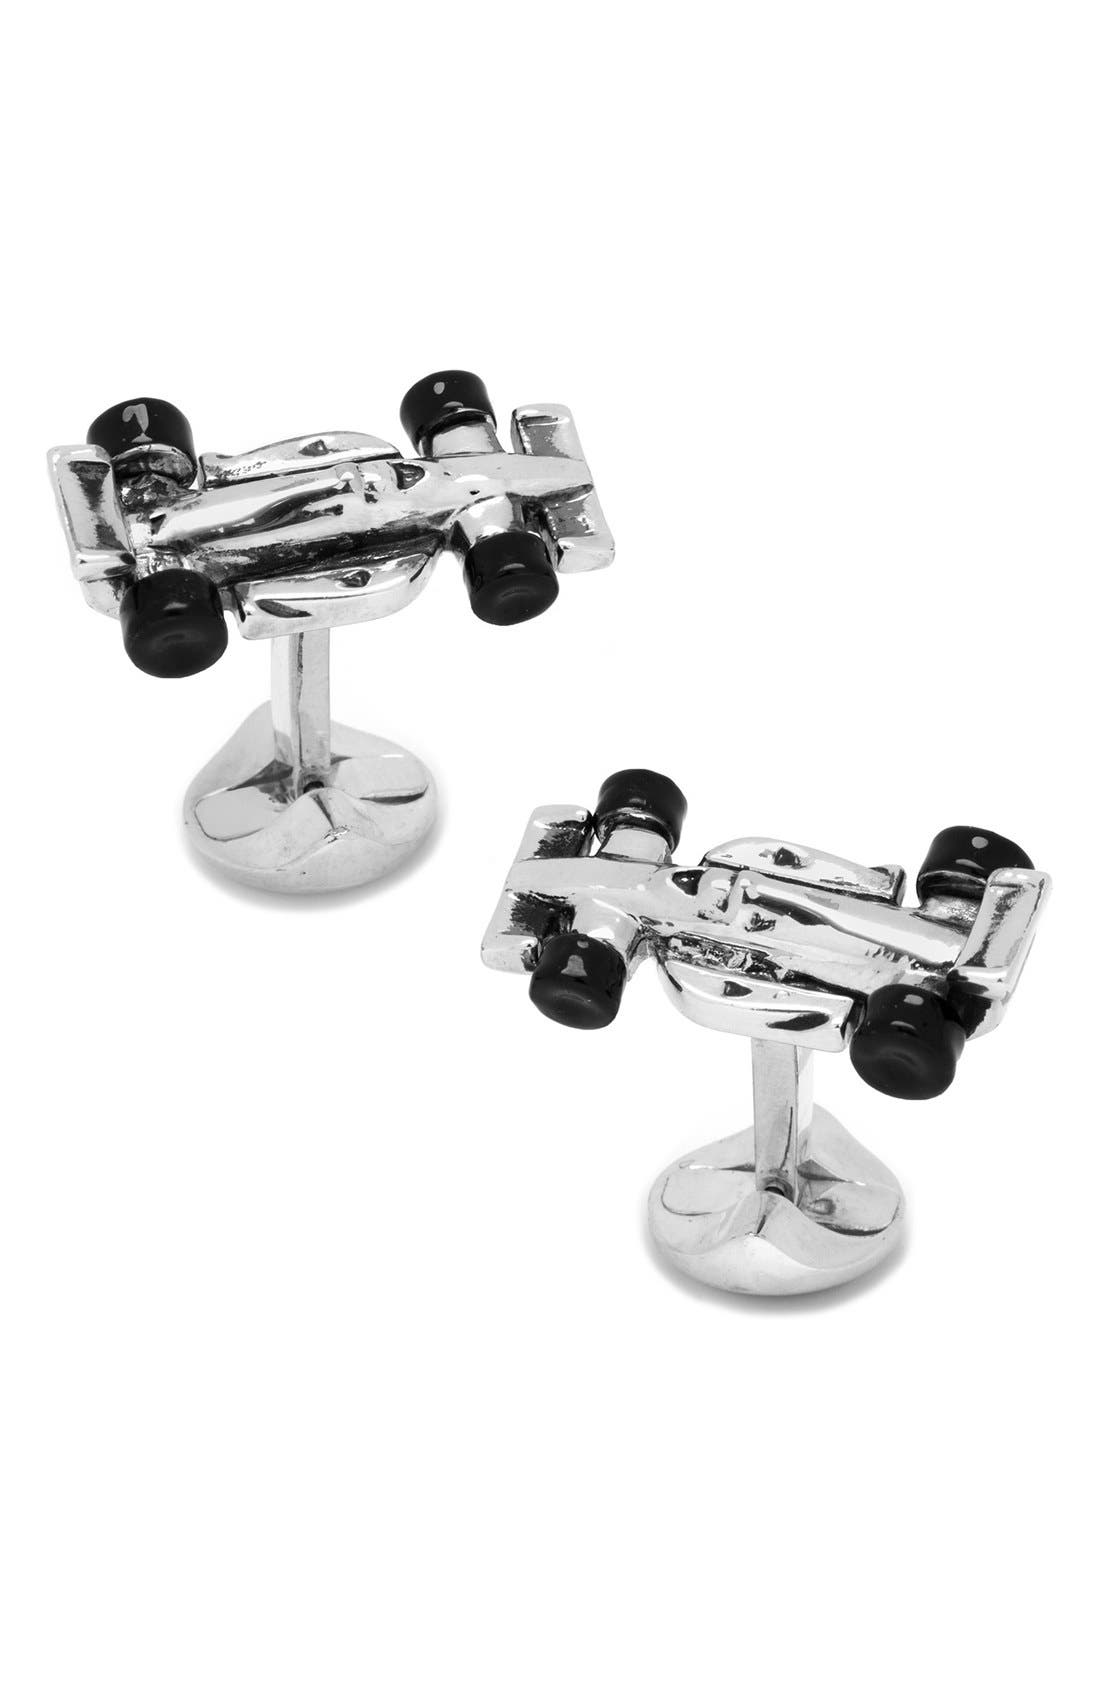 Main Image - Ox and Bull Trading Co. Racecar Cuff Links